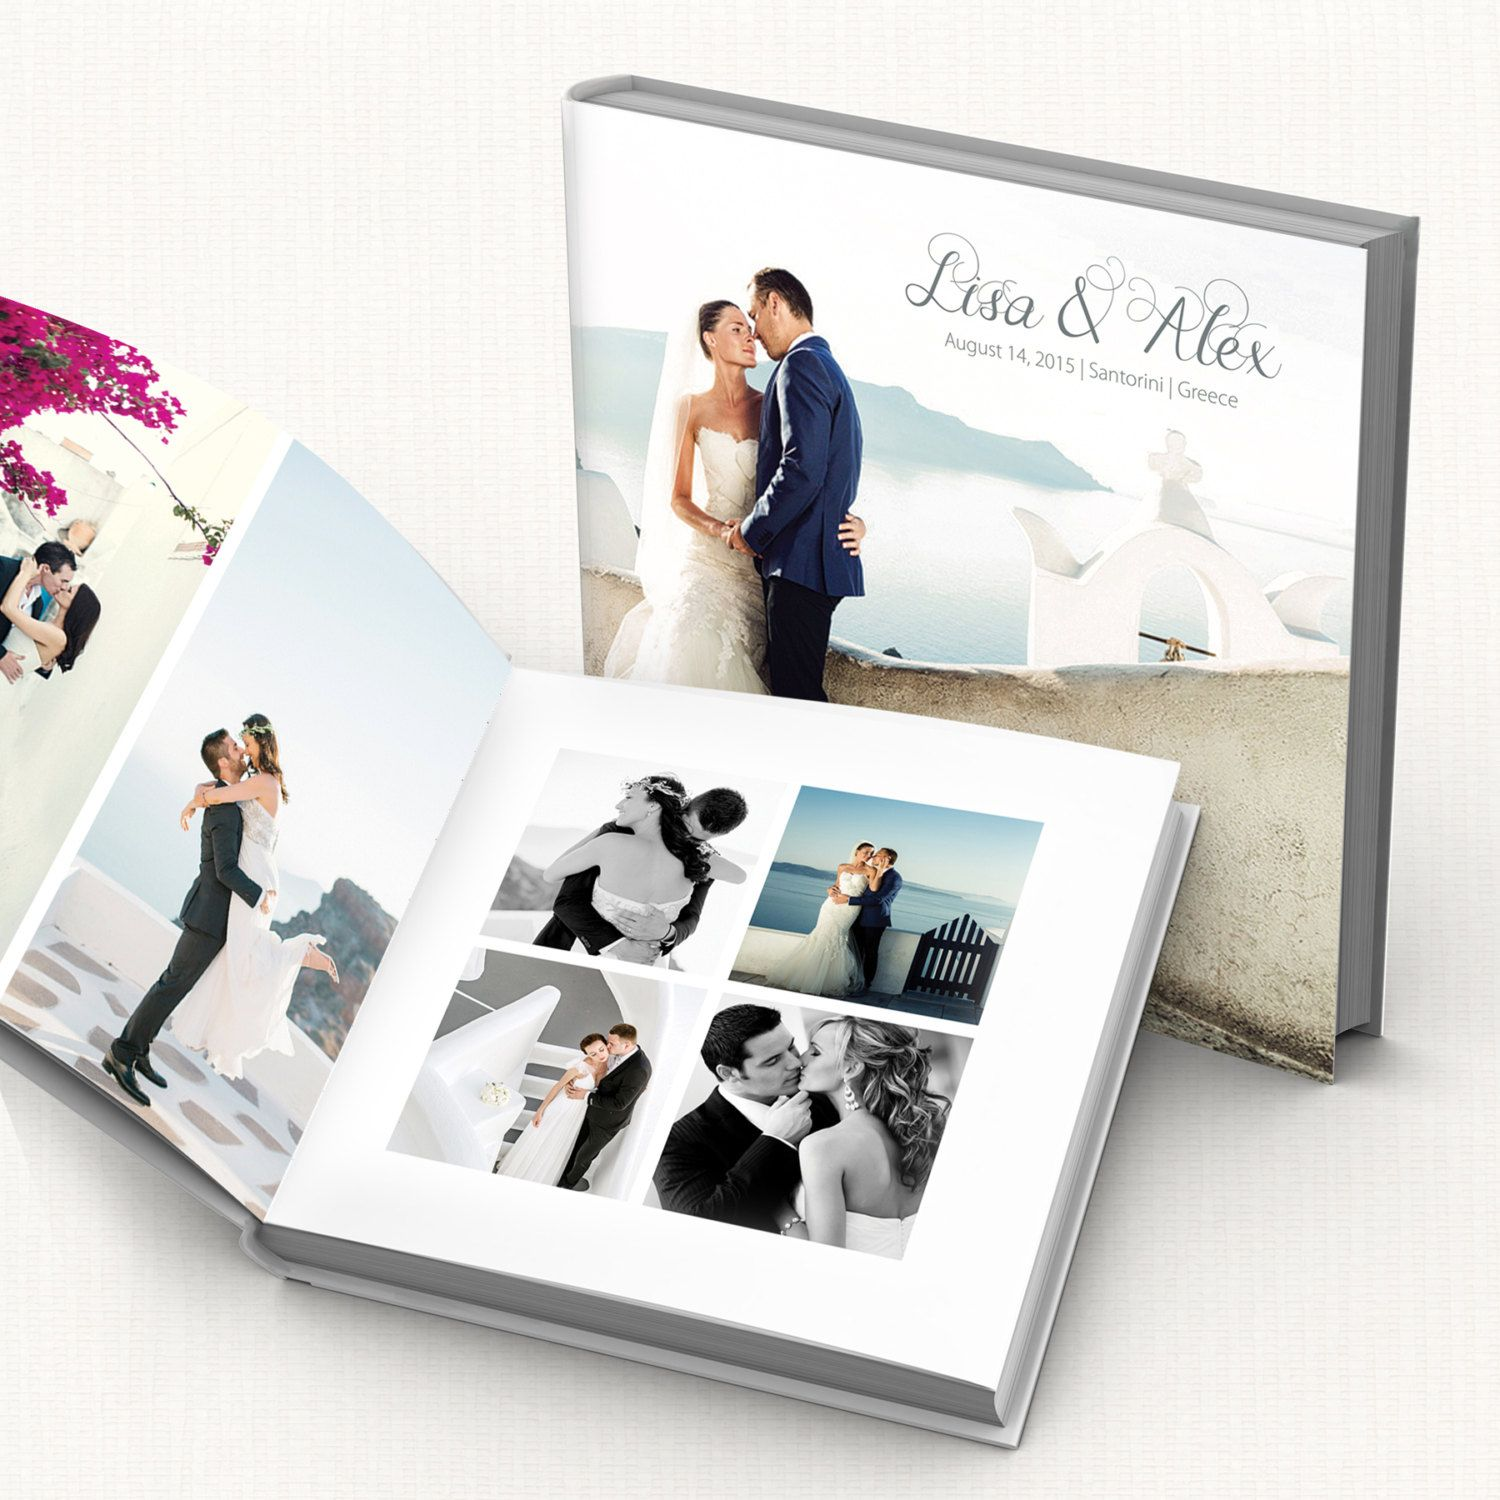 Photo Album Examples: Wedding Album PSD Template. Customizable Modern Wedding